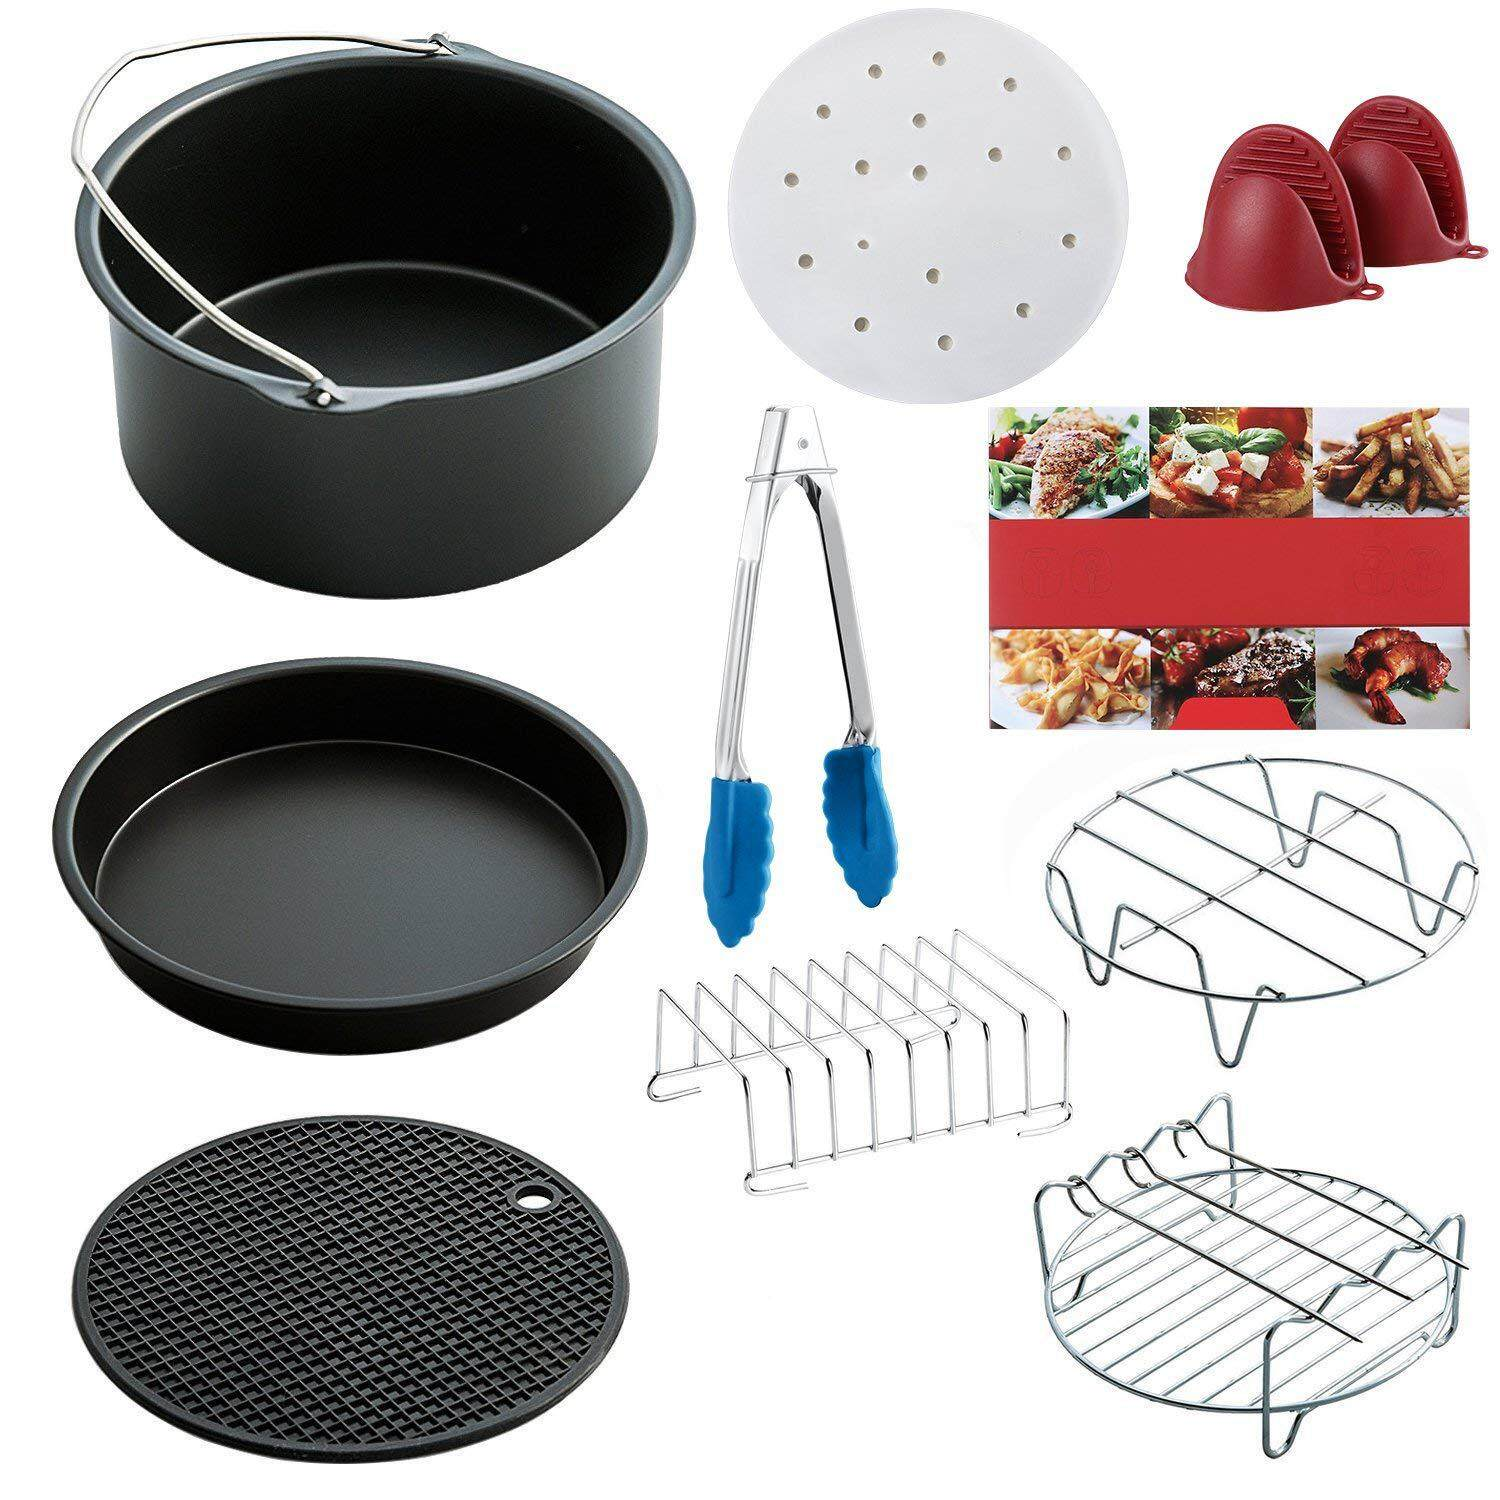 Air Fryer Accessories Set Of 10 Pcs, Fit All Standard Air Fryer 3.7qt- 5.3qt- 5.8qt, 7 Inch Free Shipping By Rainning.